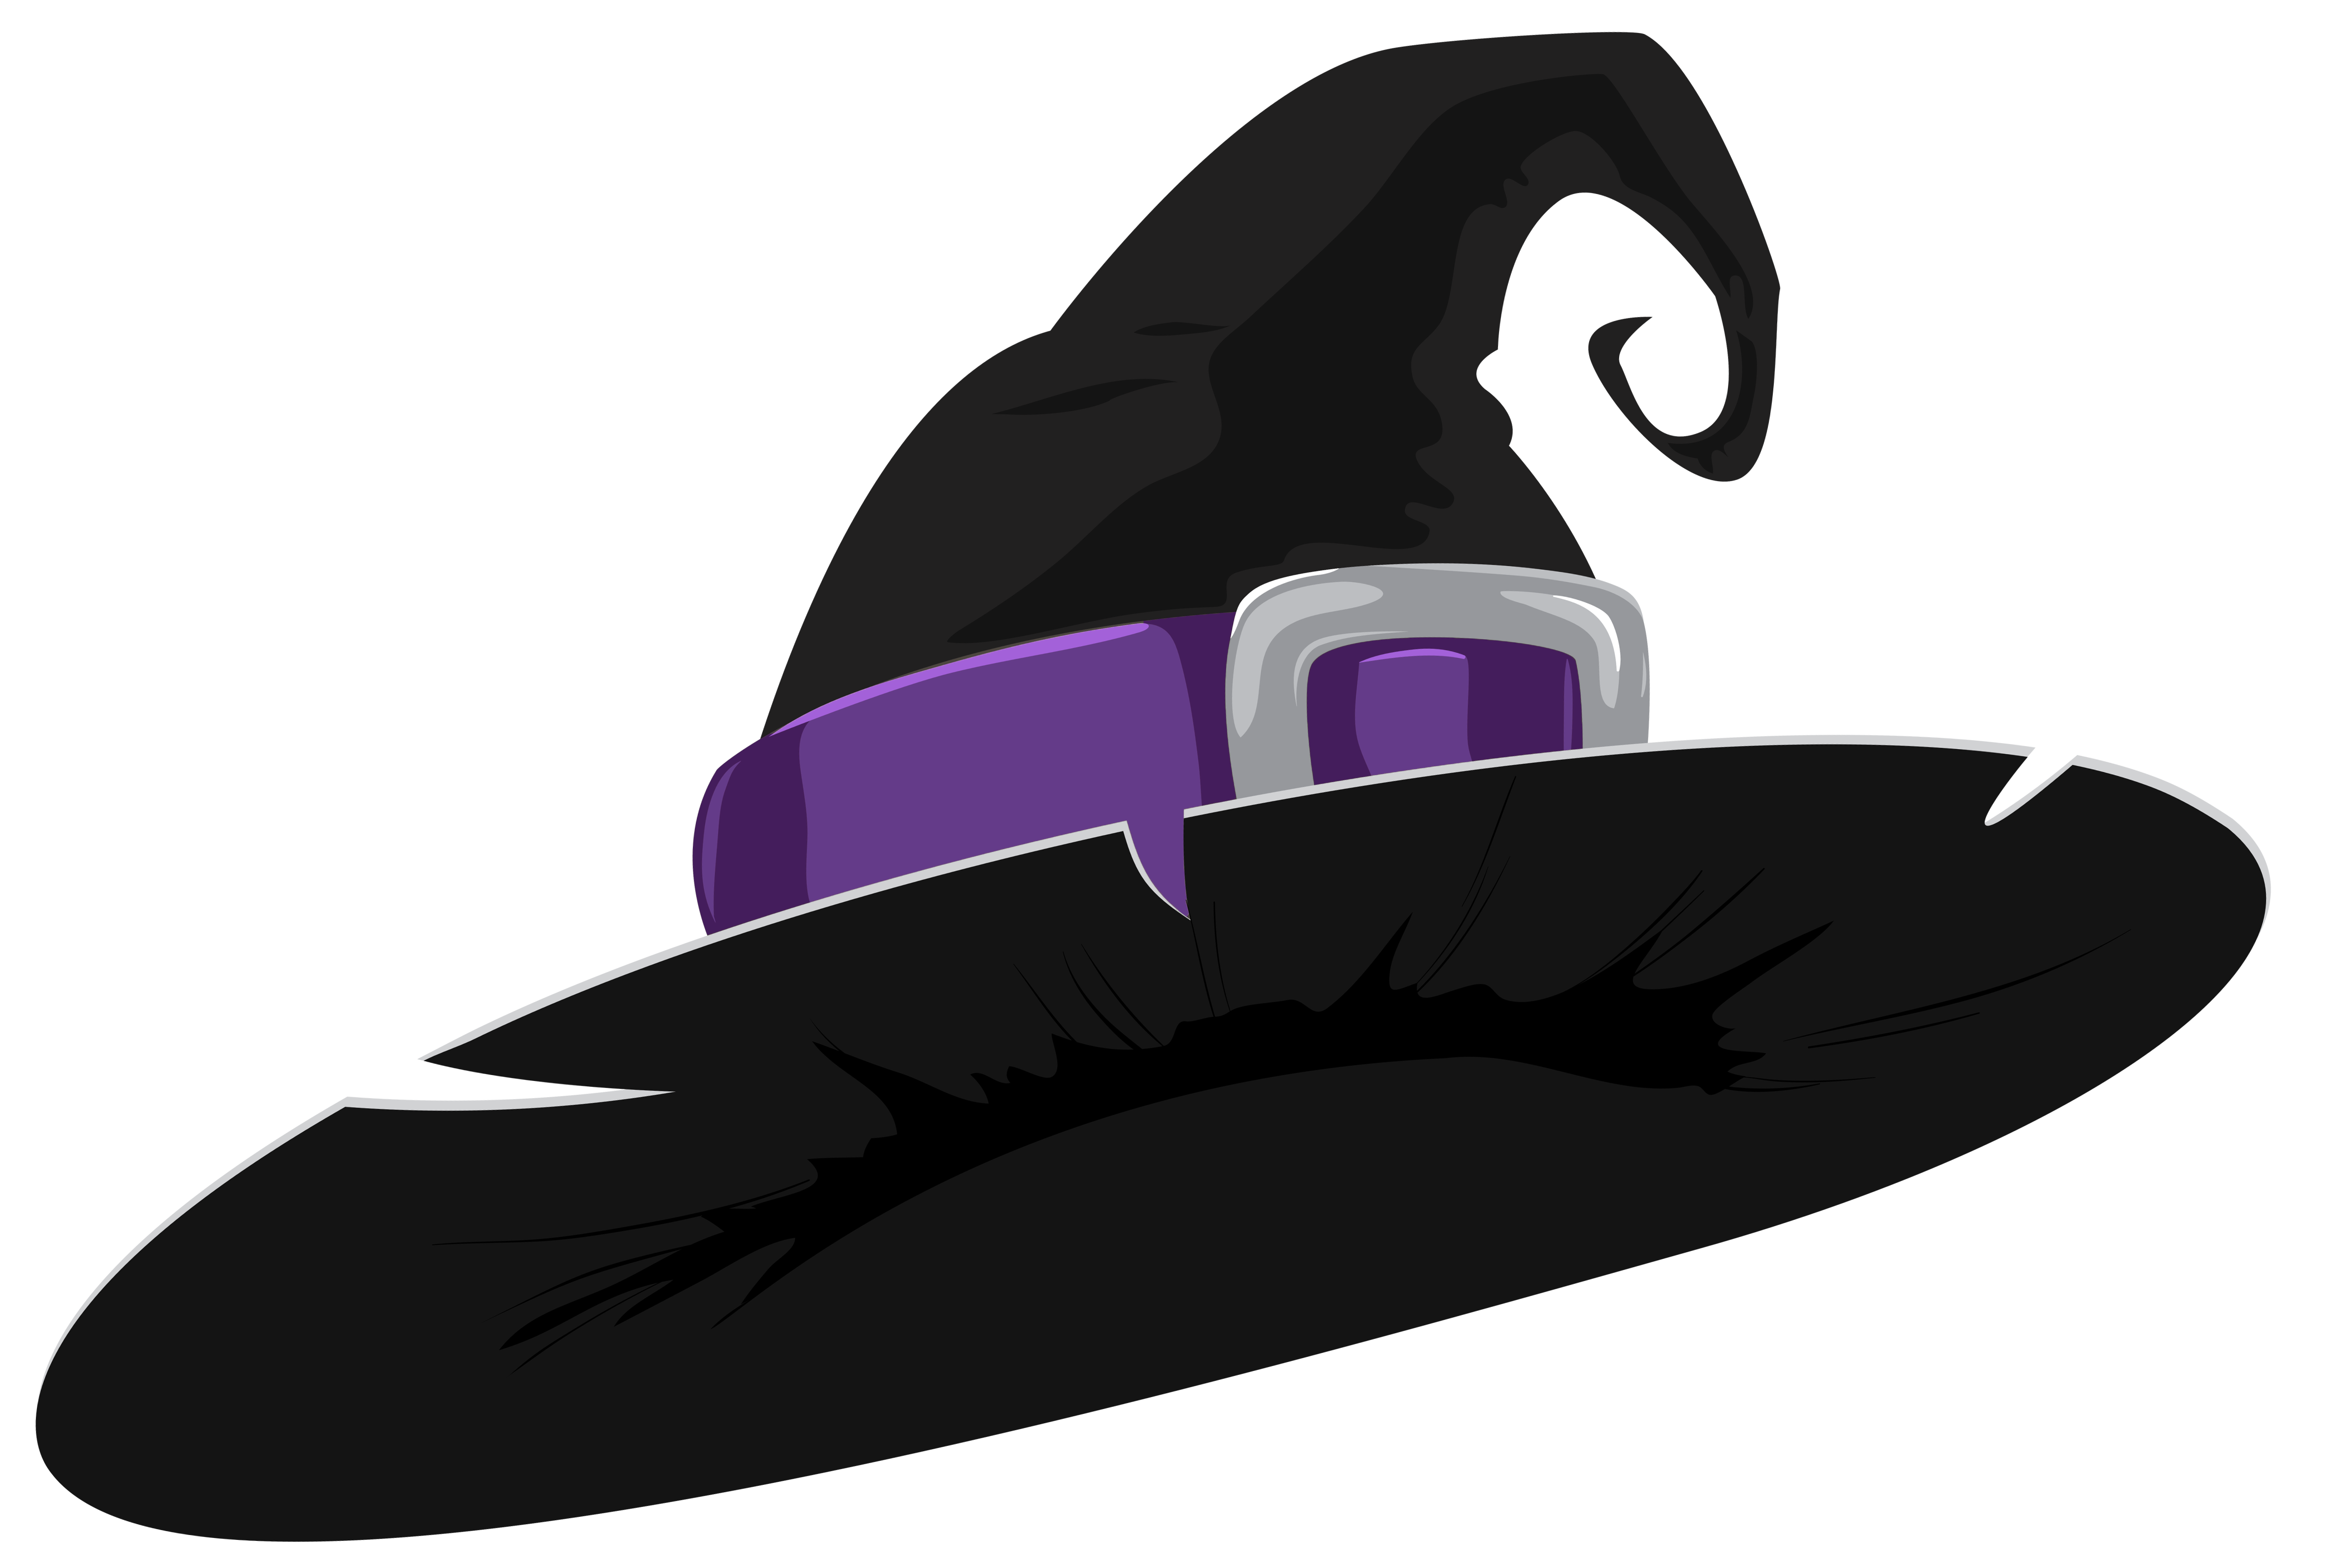 Witch hat black and. Clipart halloween purple